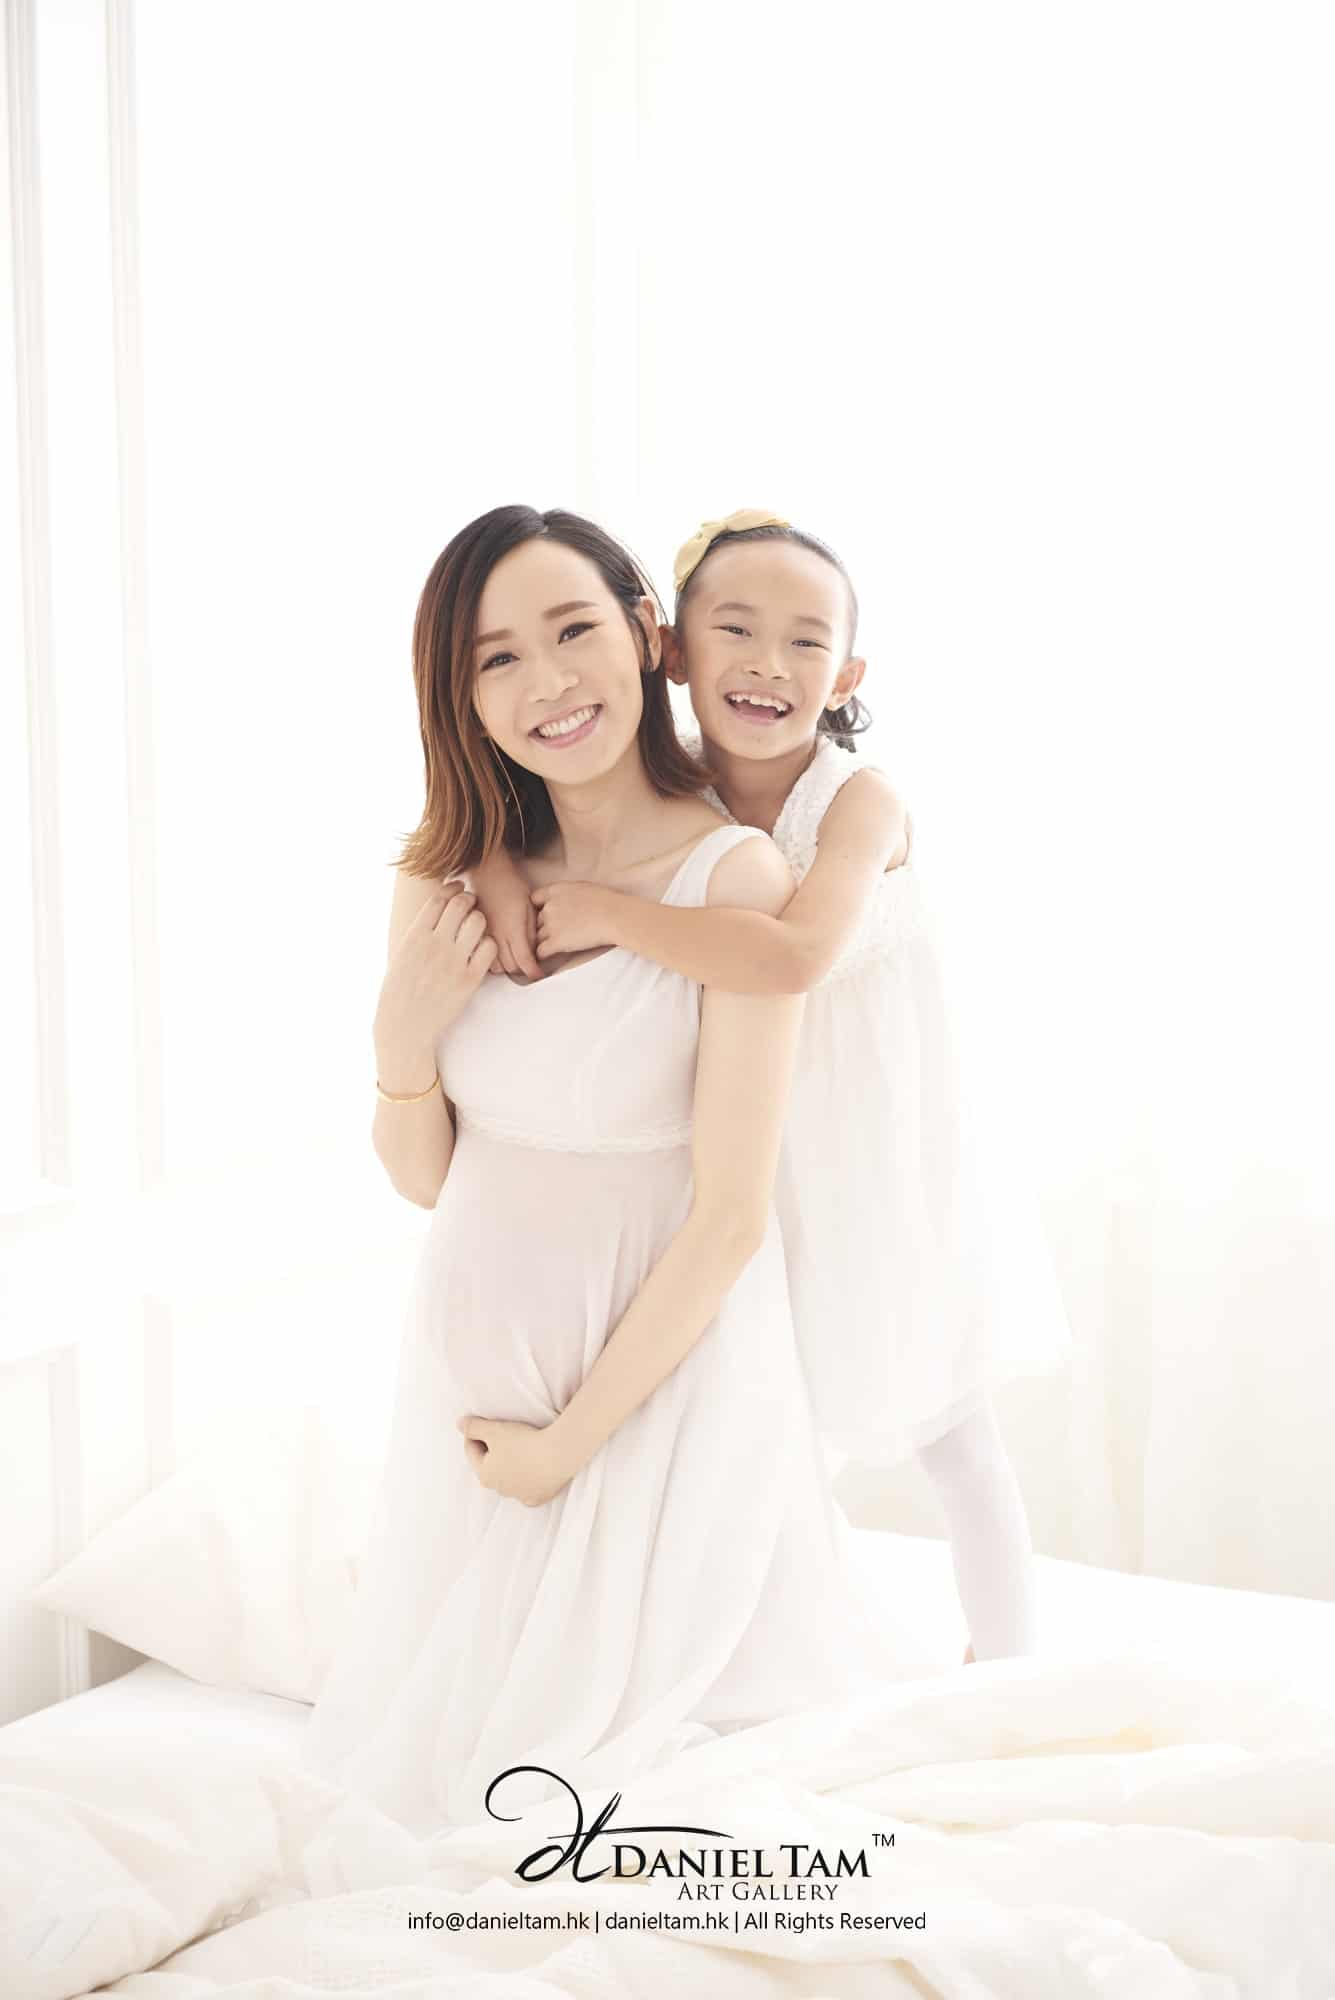 楊思琦 yeung sze kei pregnancy photo 005